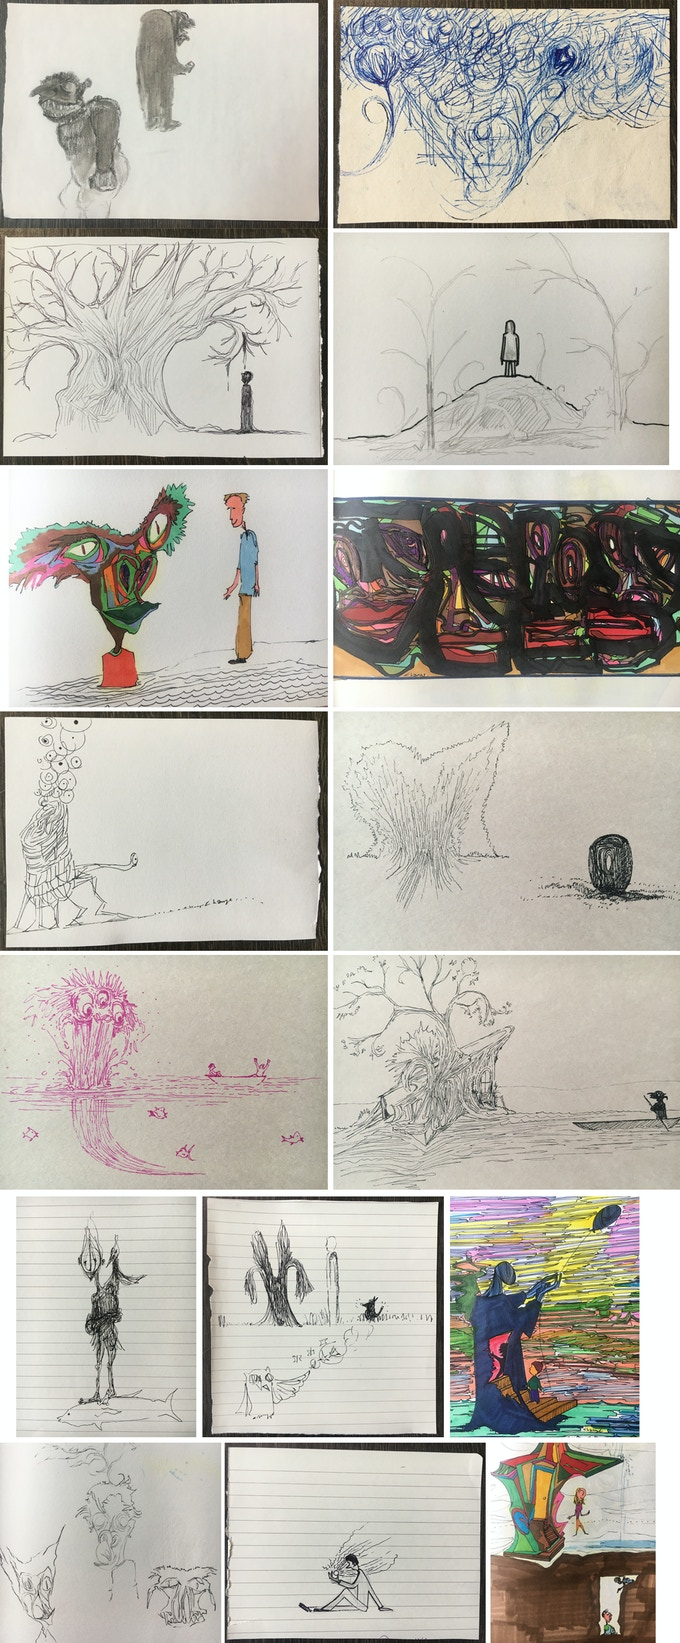 Original sketches and drawings from the director!